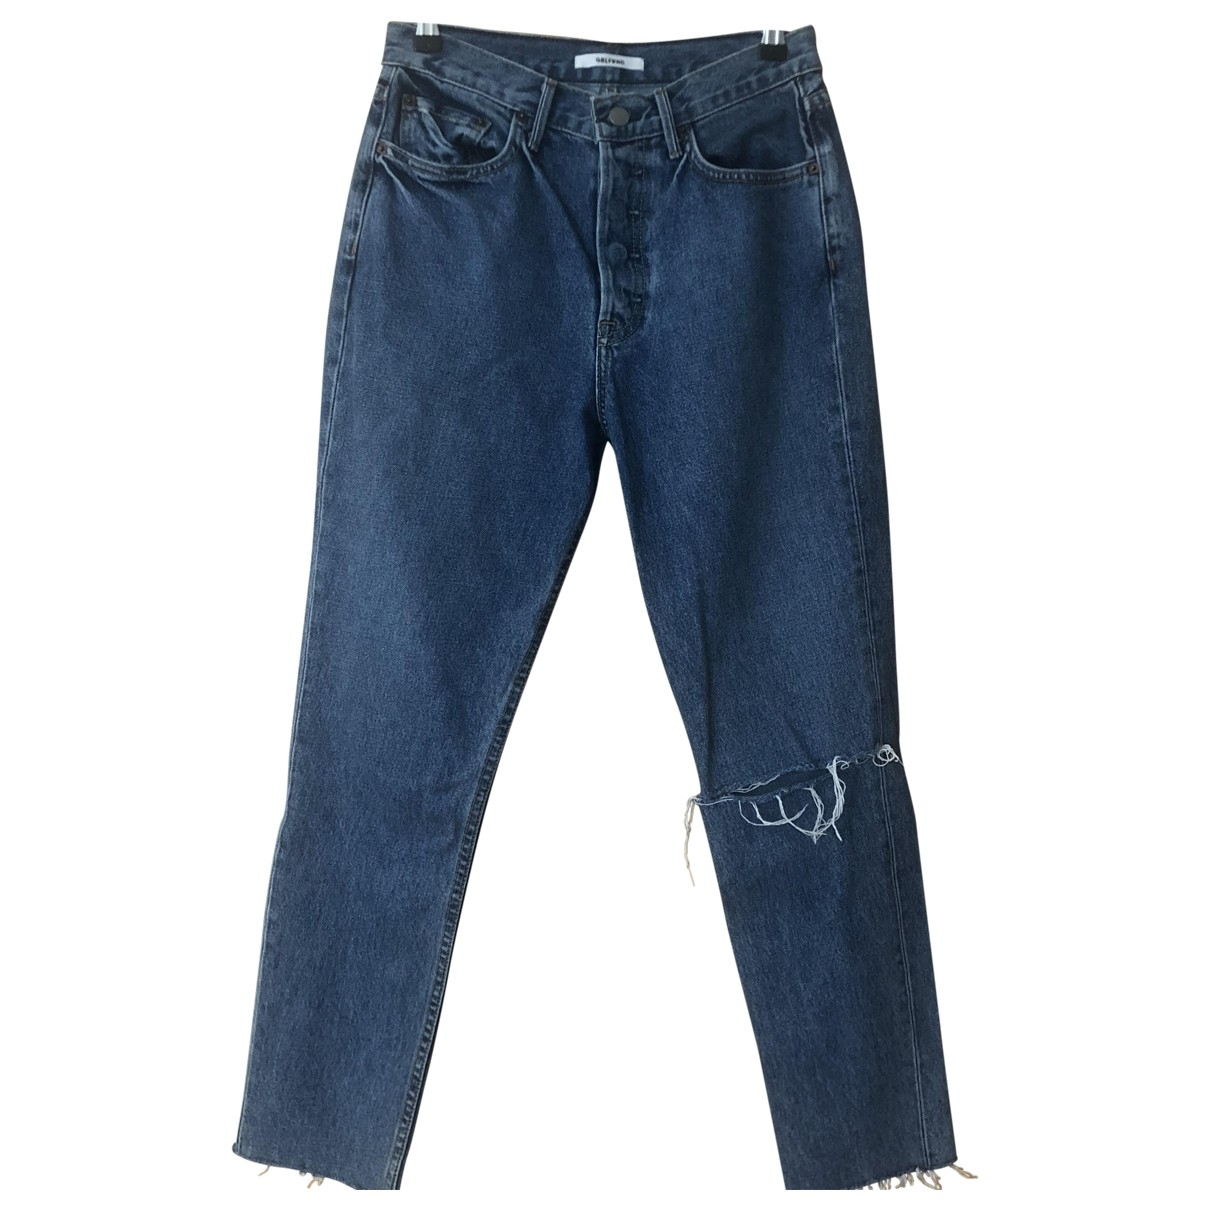 Grlfrnd \N Blue Denim - Jeans Jeans for Women 27 US